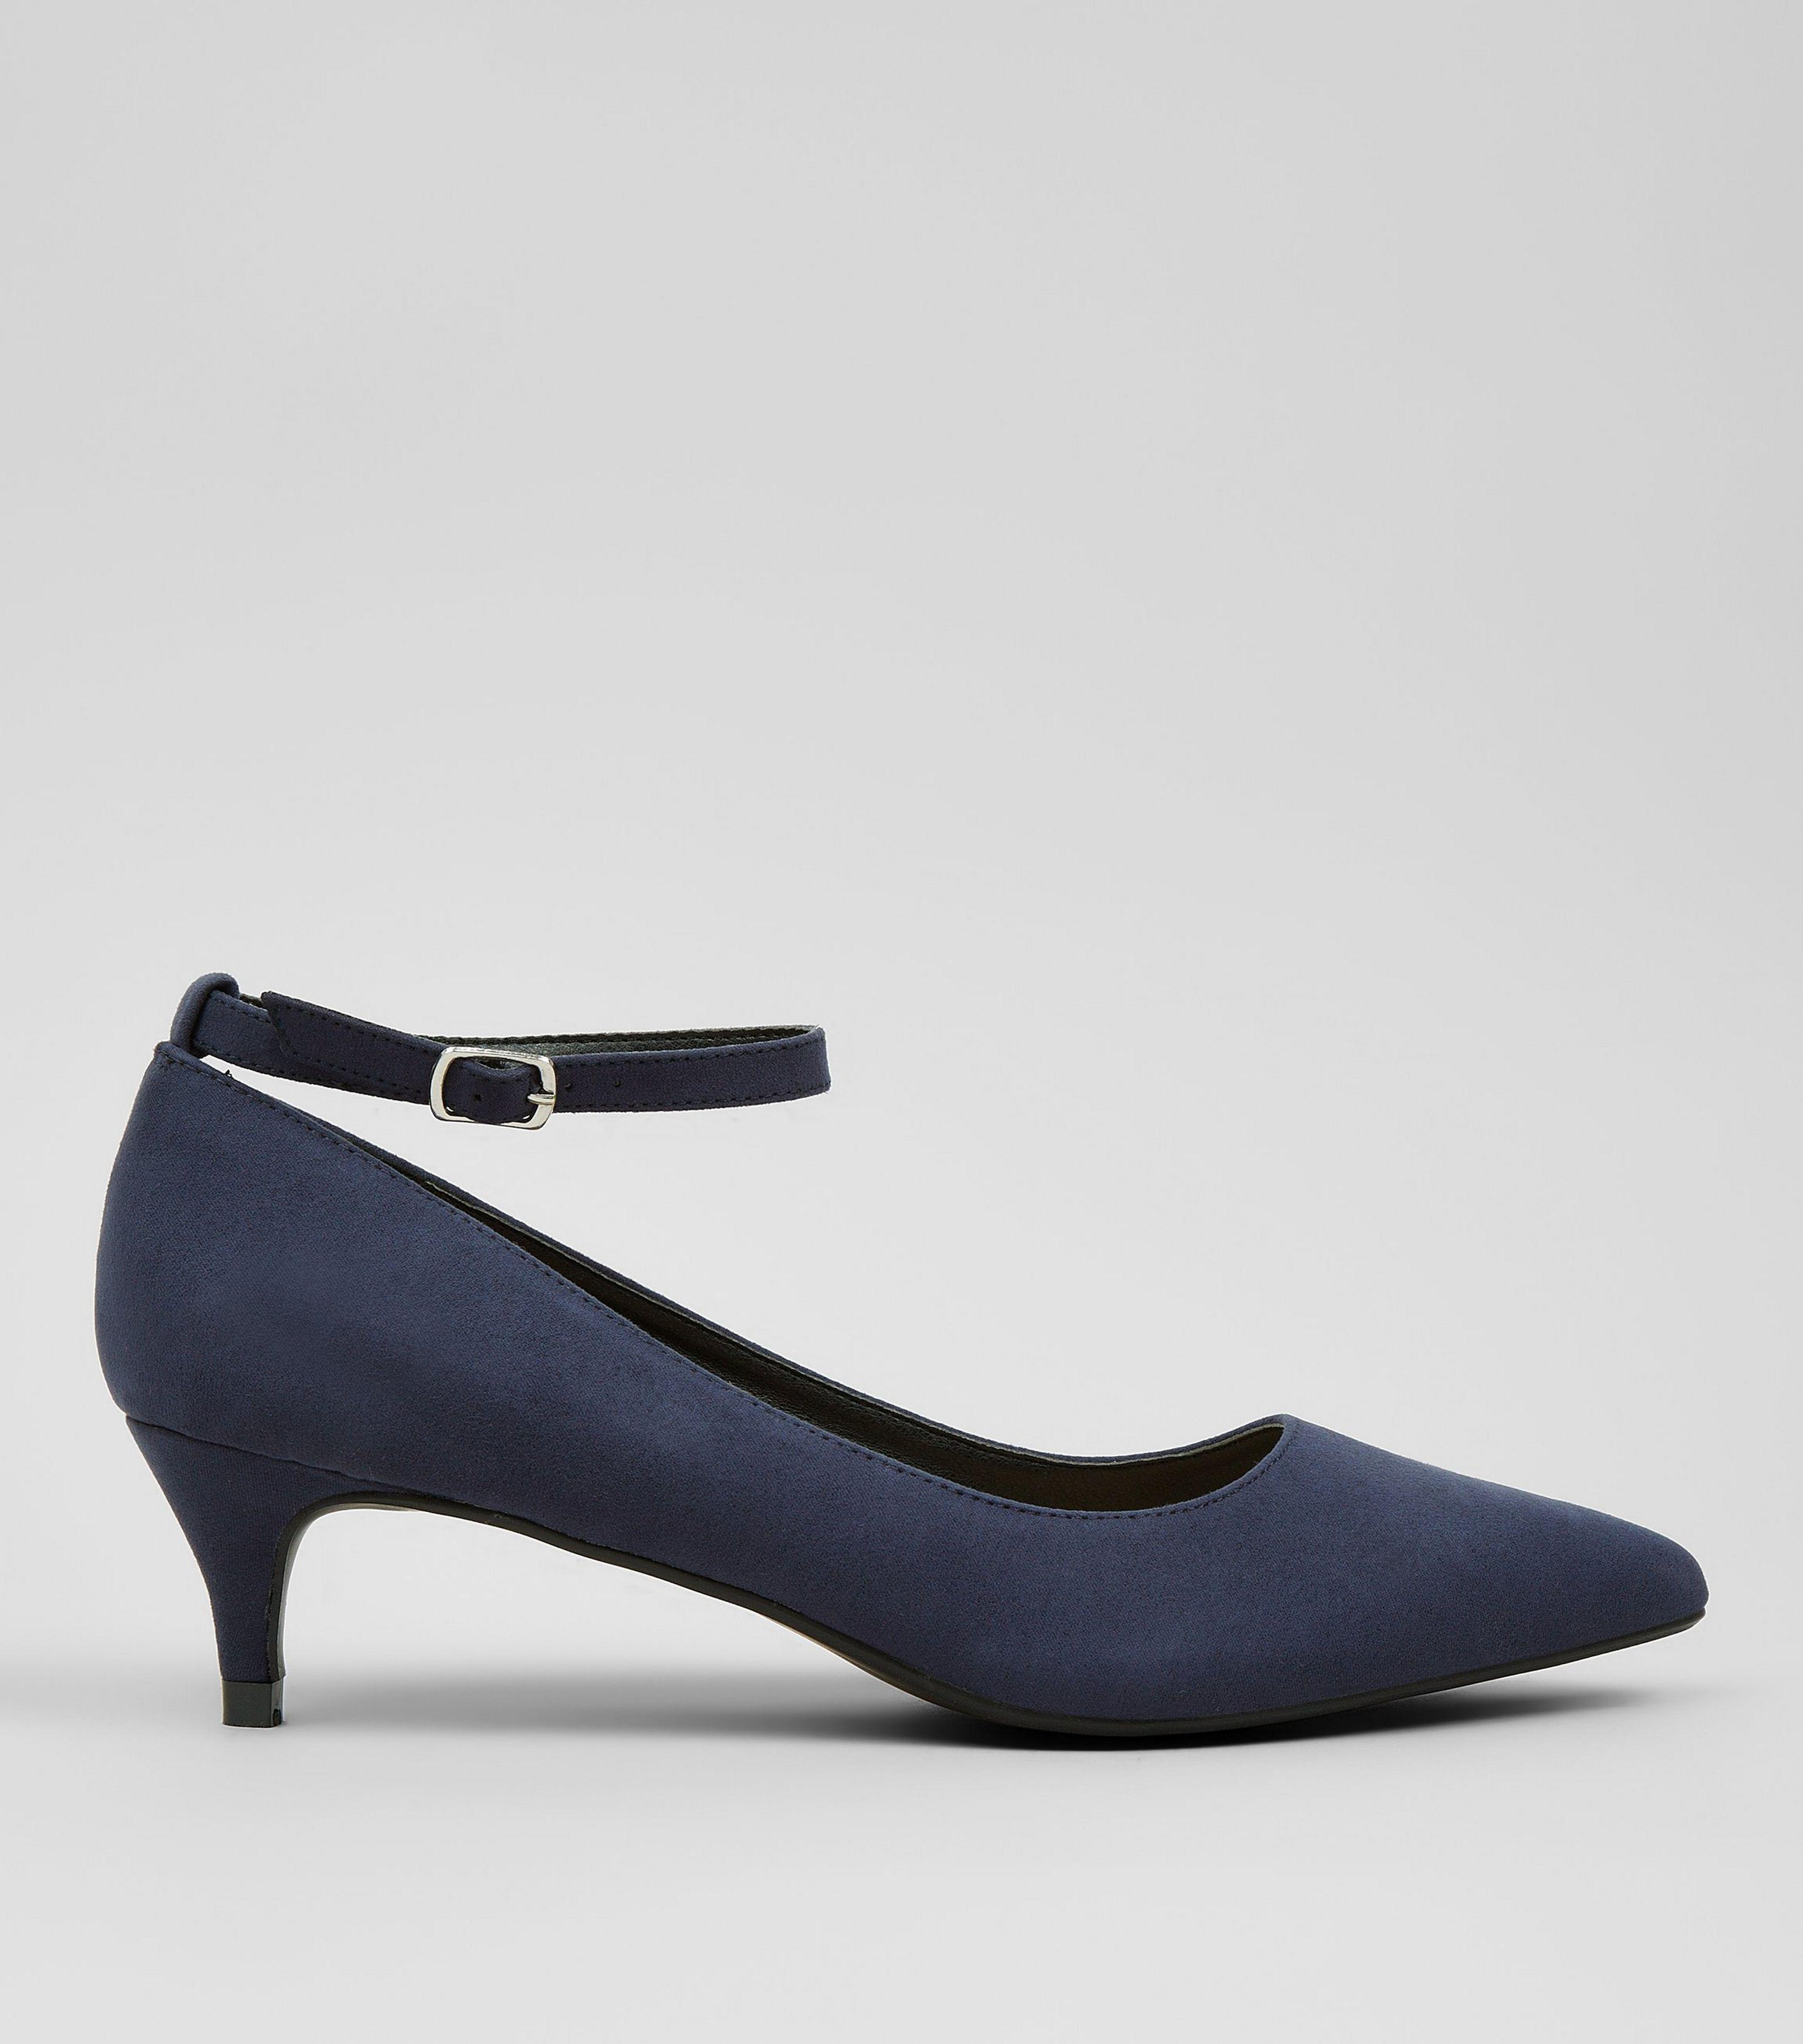 a7f1a0240ee New Look Navy Suedette Mid Heel Ankle Strap Court Shoes in Blue - Lyst